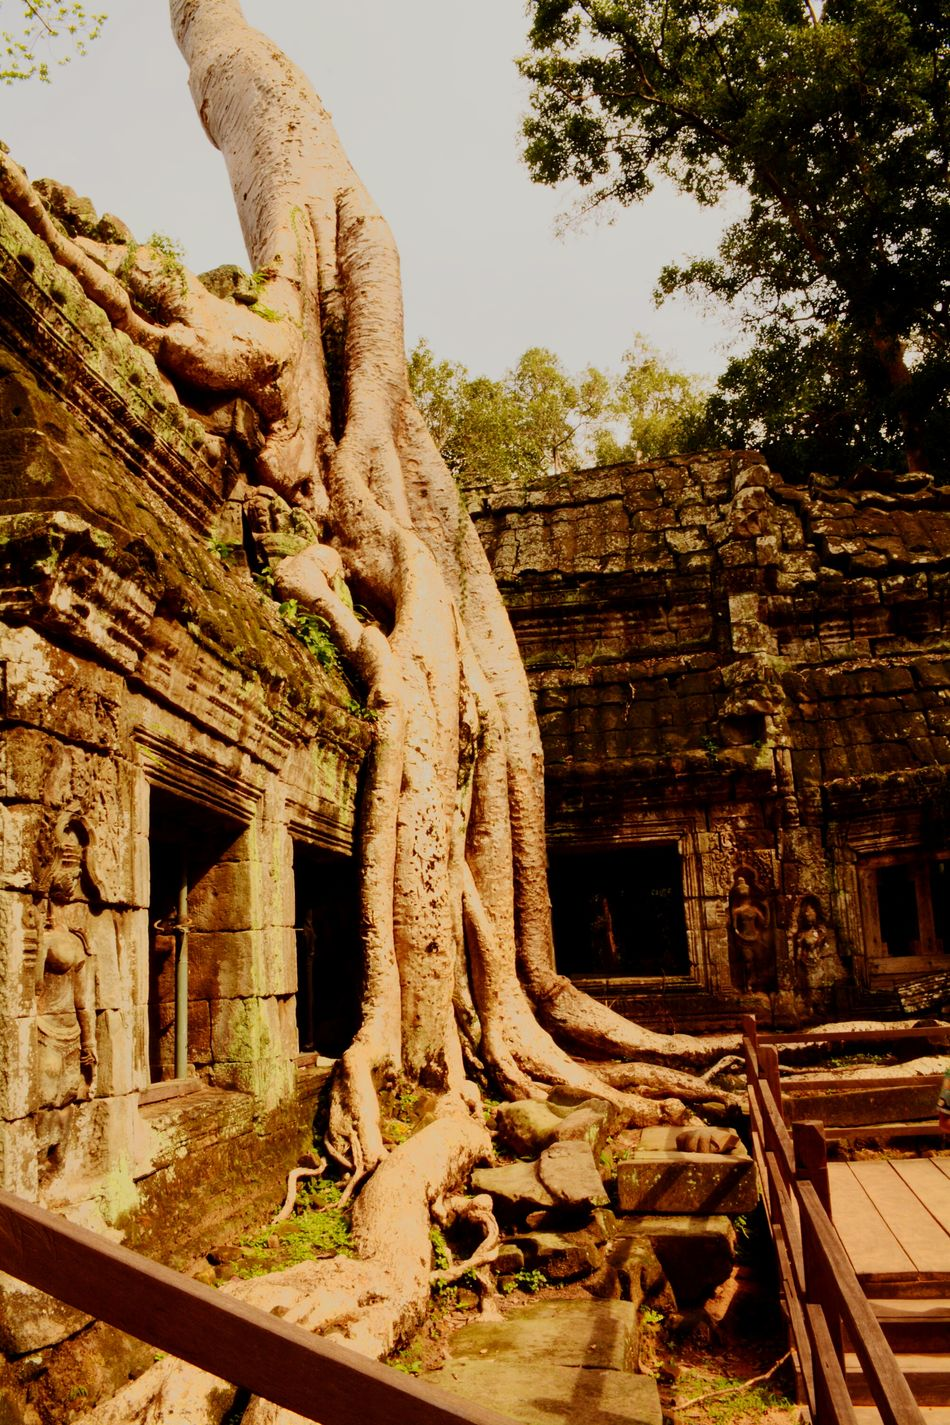 Cambodia Angkor Wat Tombraider Classic Tree Tree Trunk Ancient Ancient Architecture Ruins Historical Building Historic Site Archaeological Heaven Archaeology